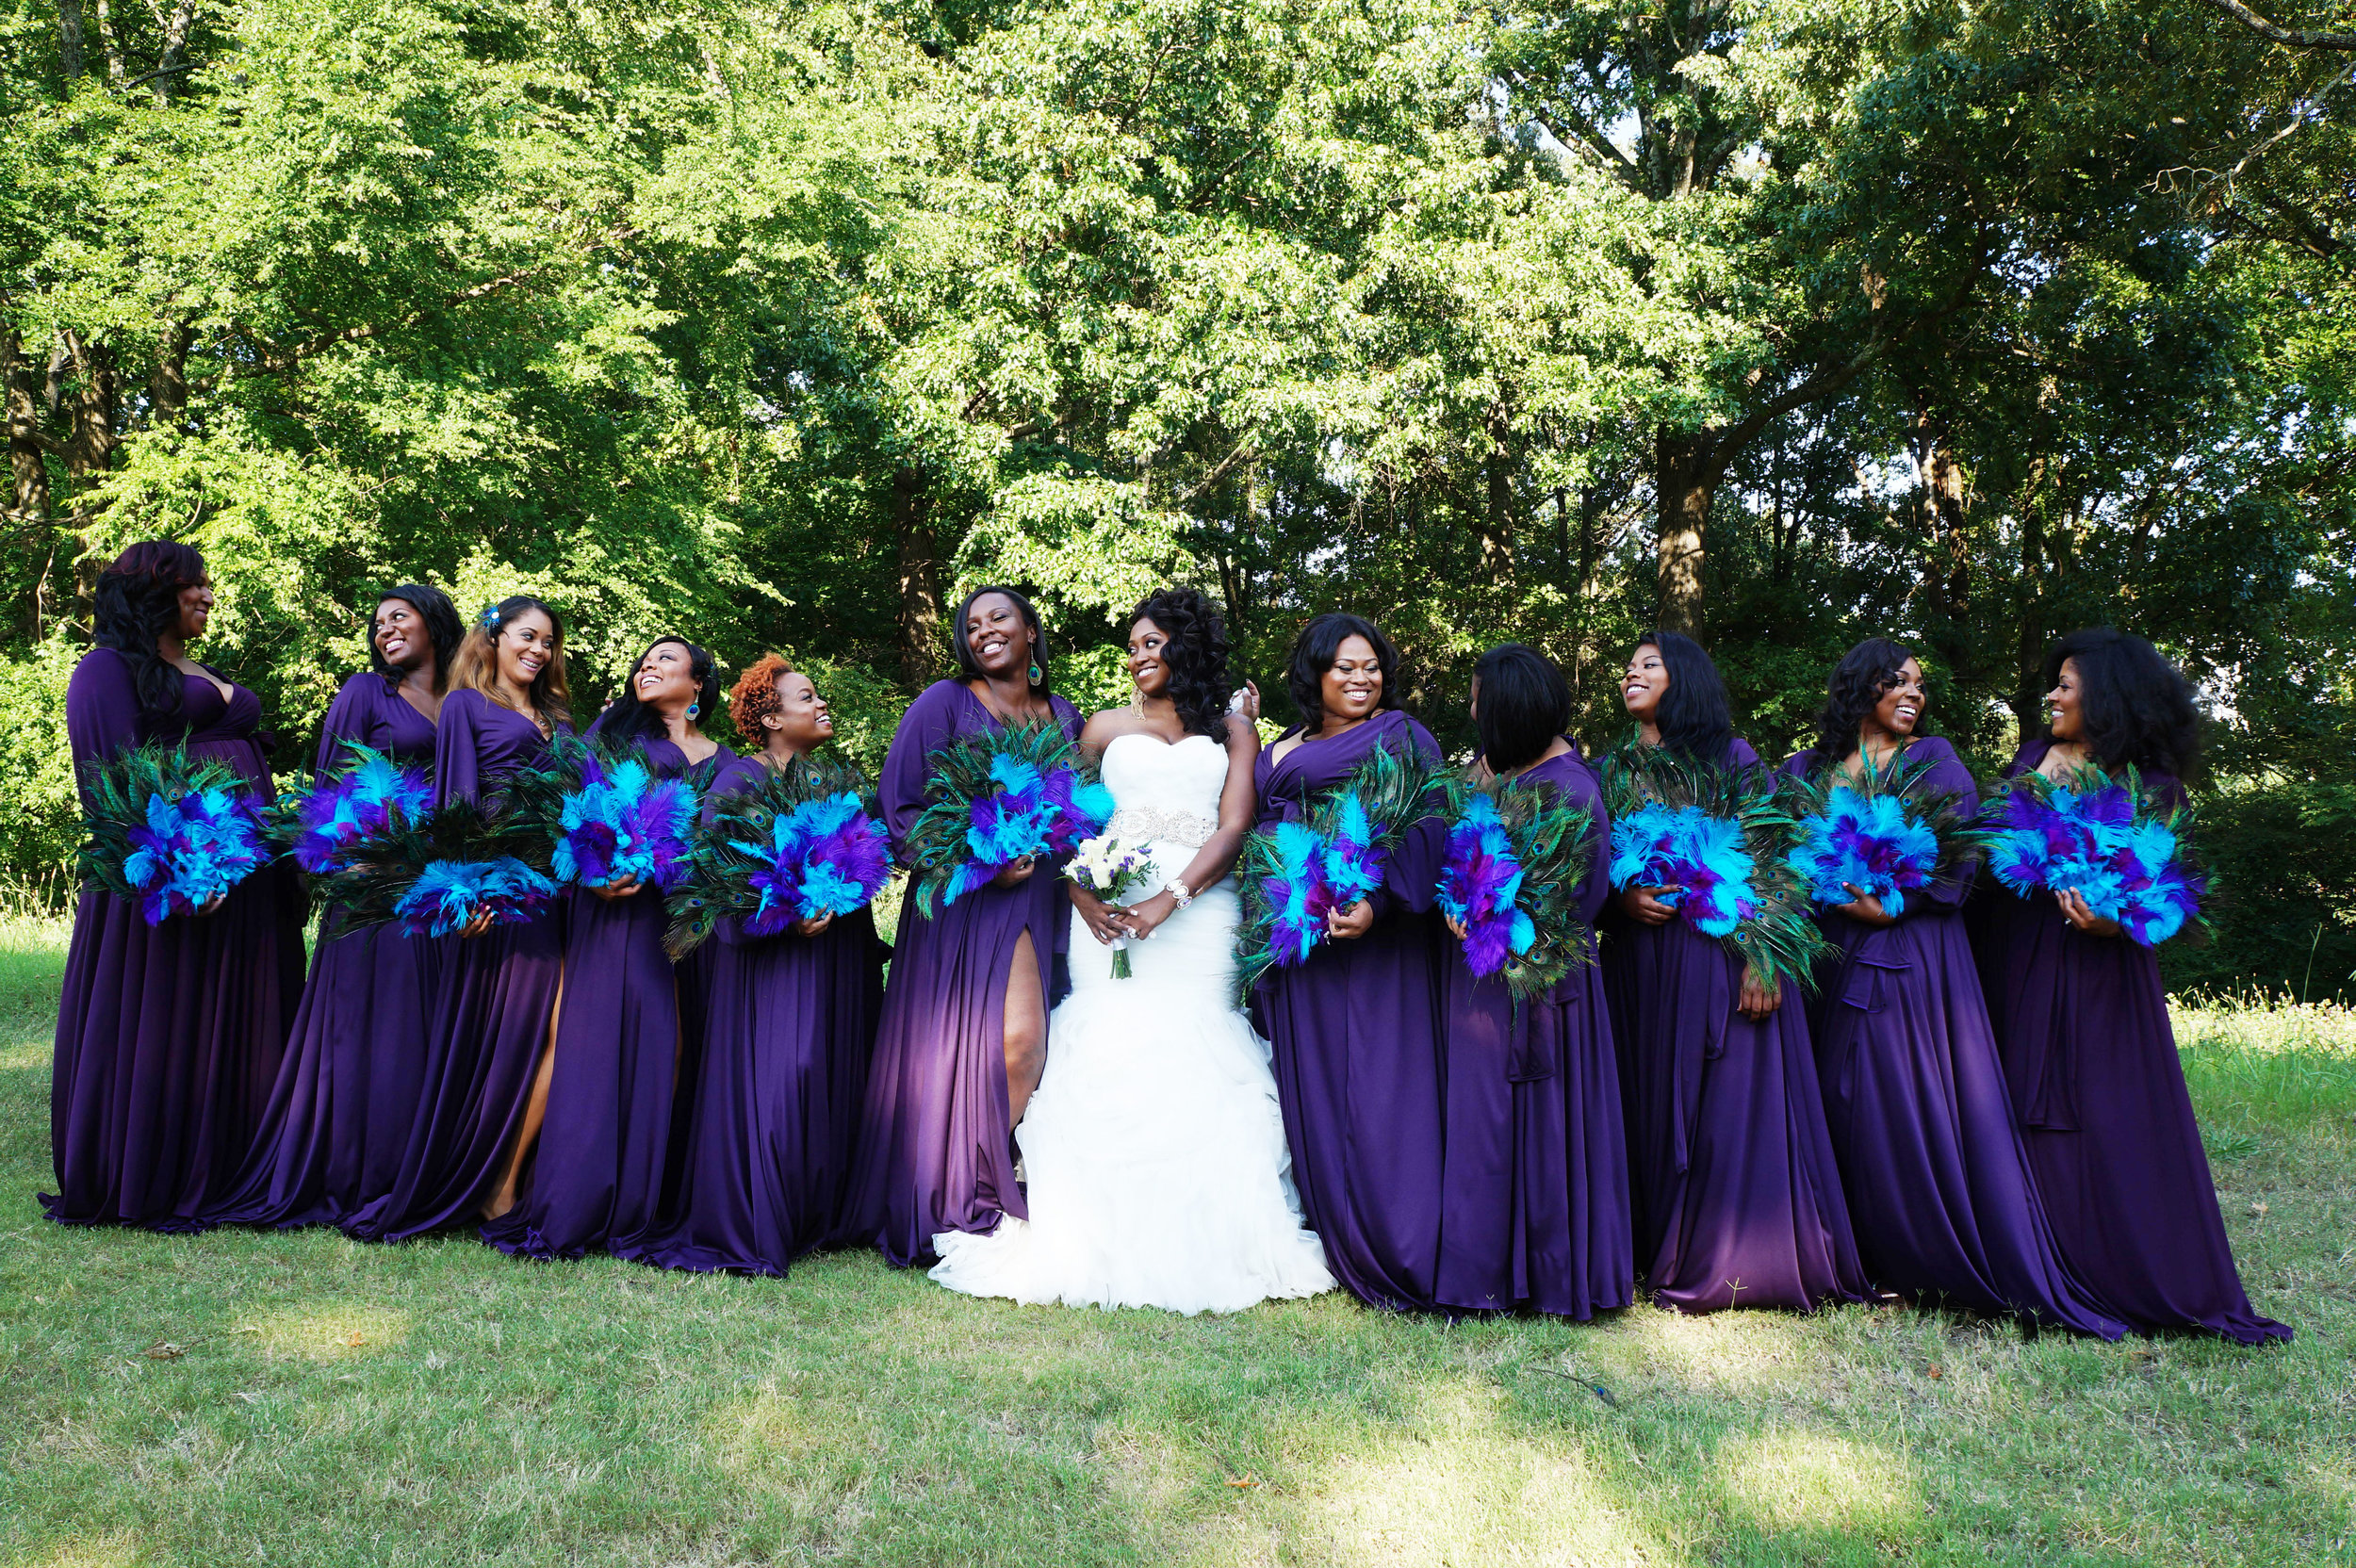 Andrea Fenise Memphis Fashion Blogger shows her bridal work